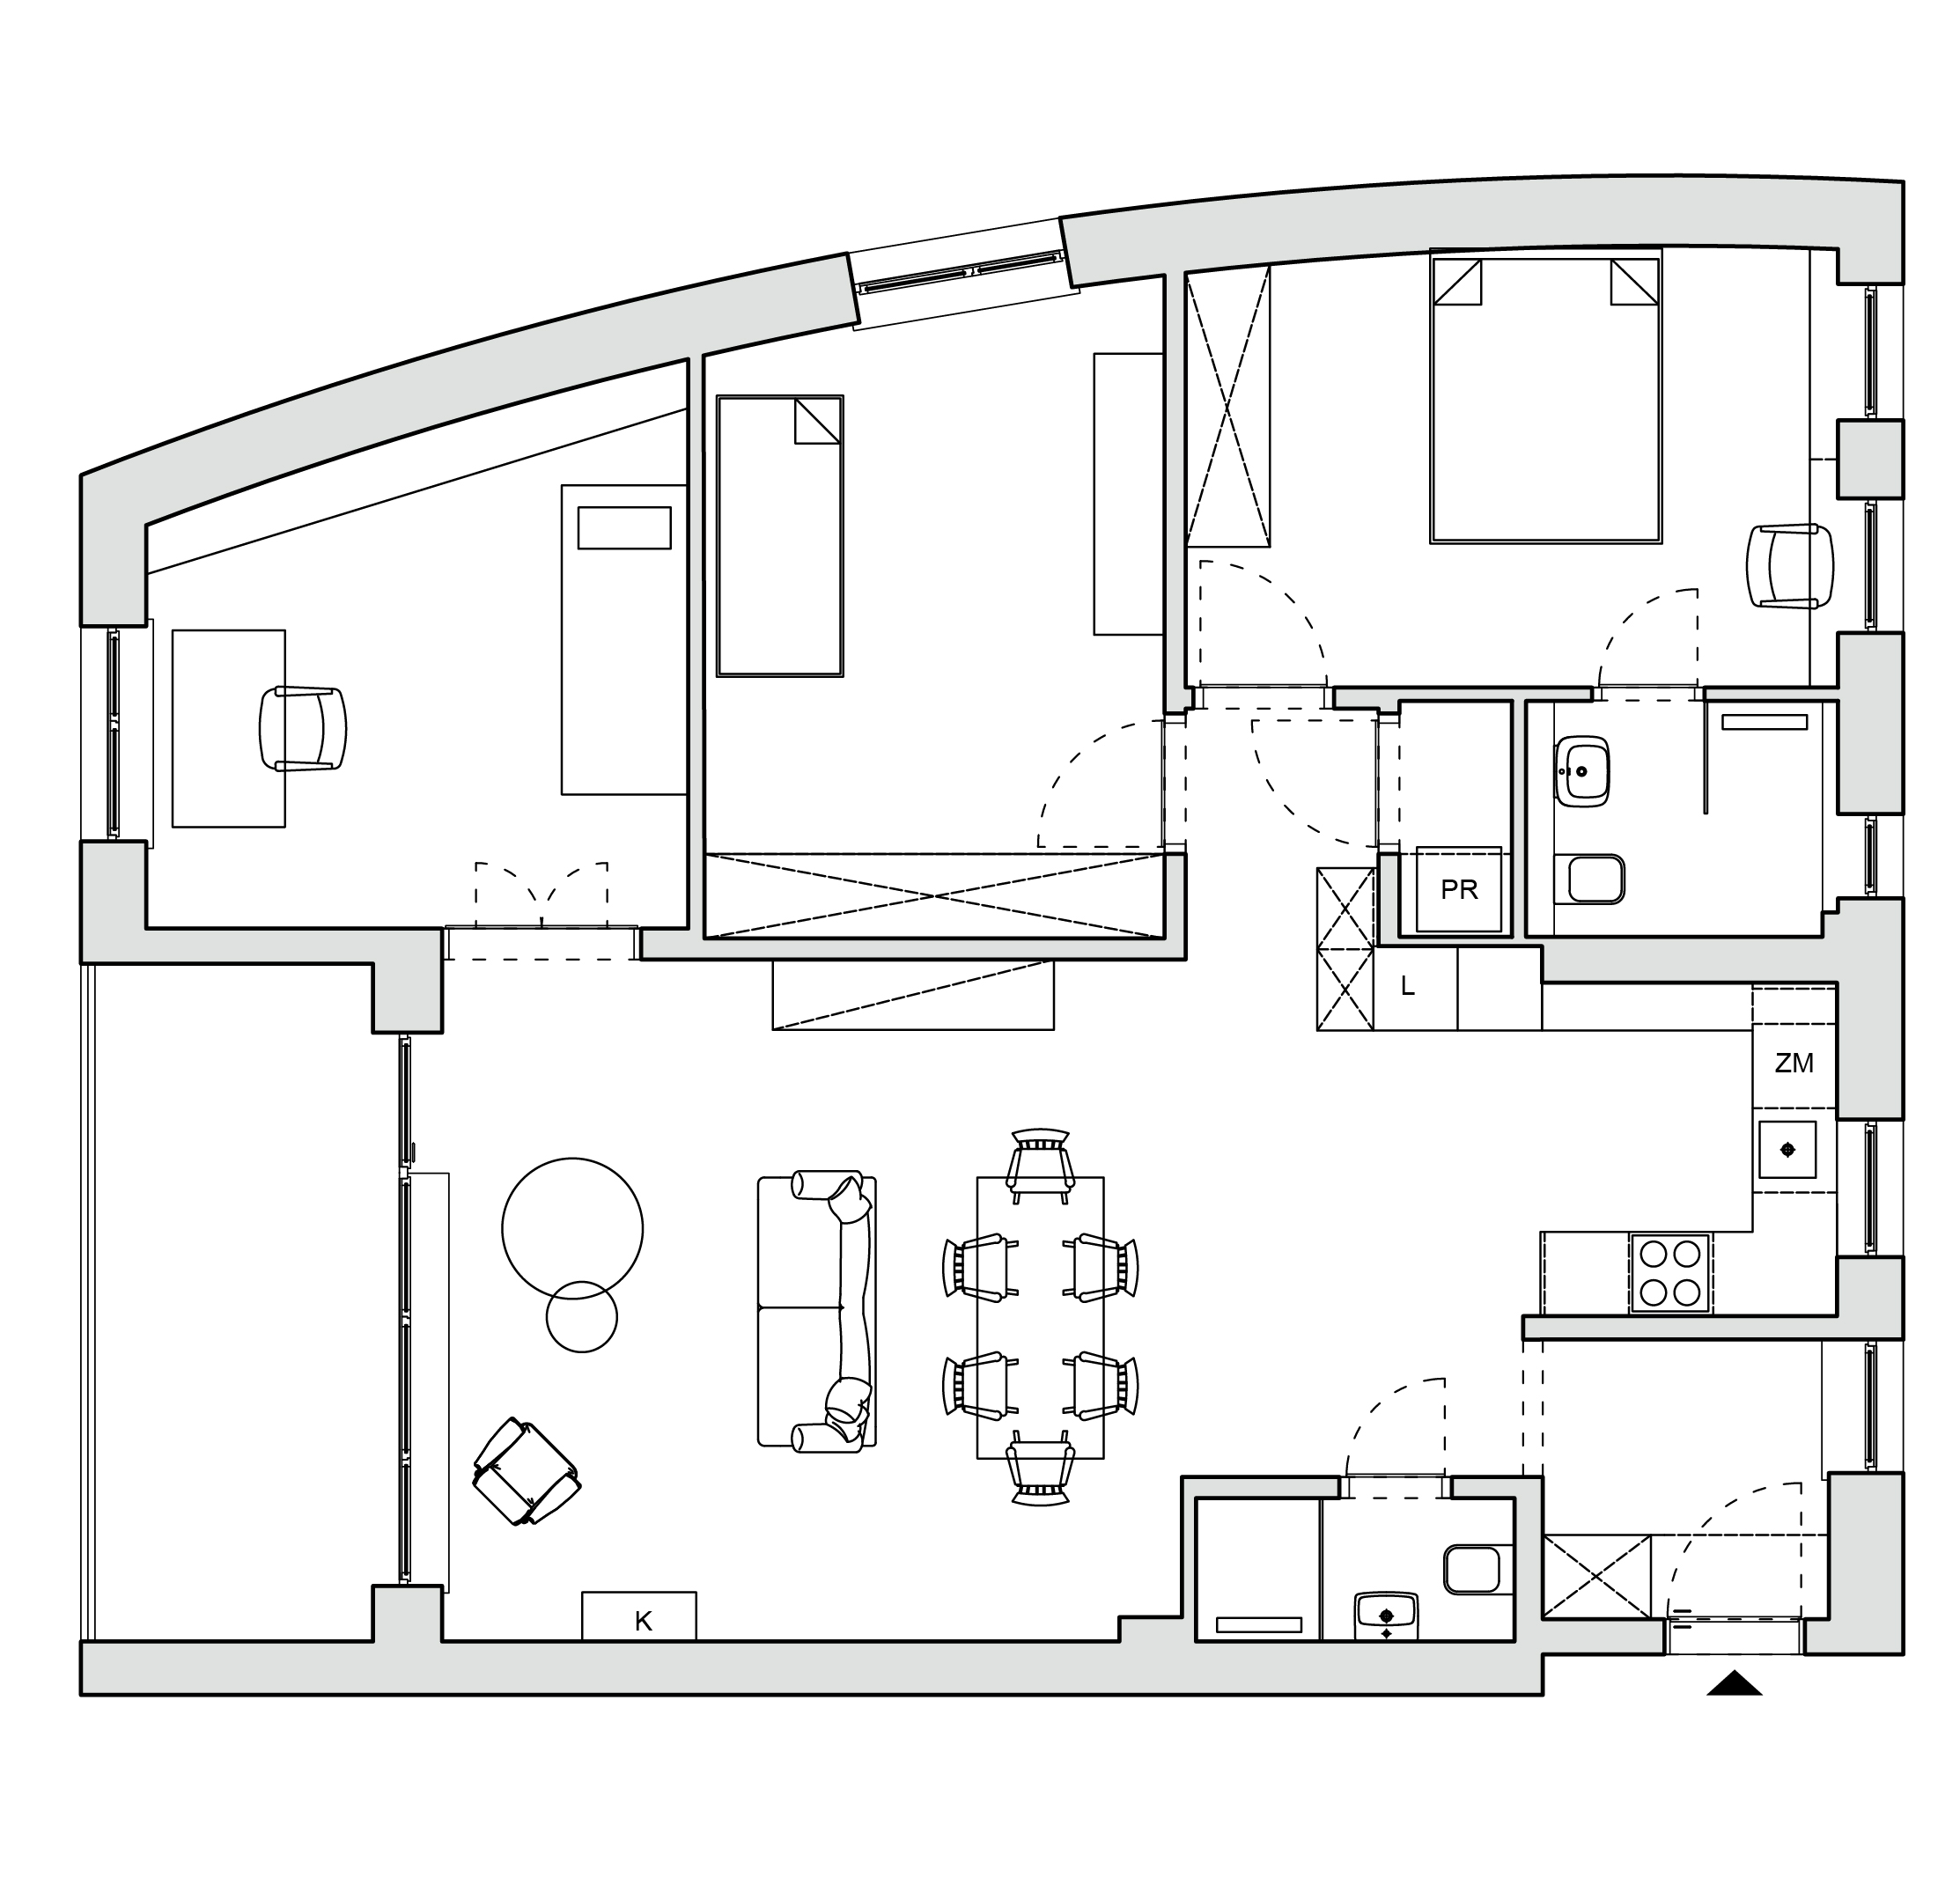 Floor plan after redecorating